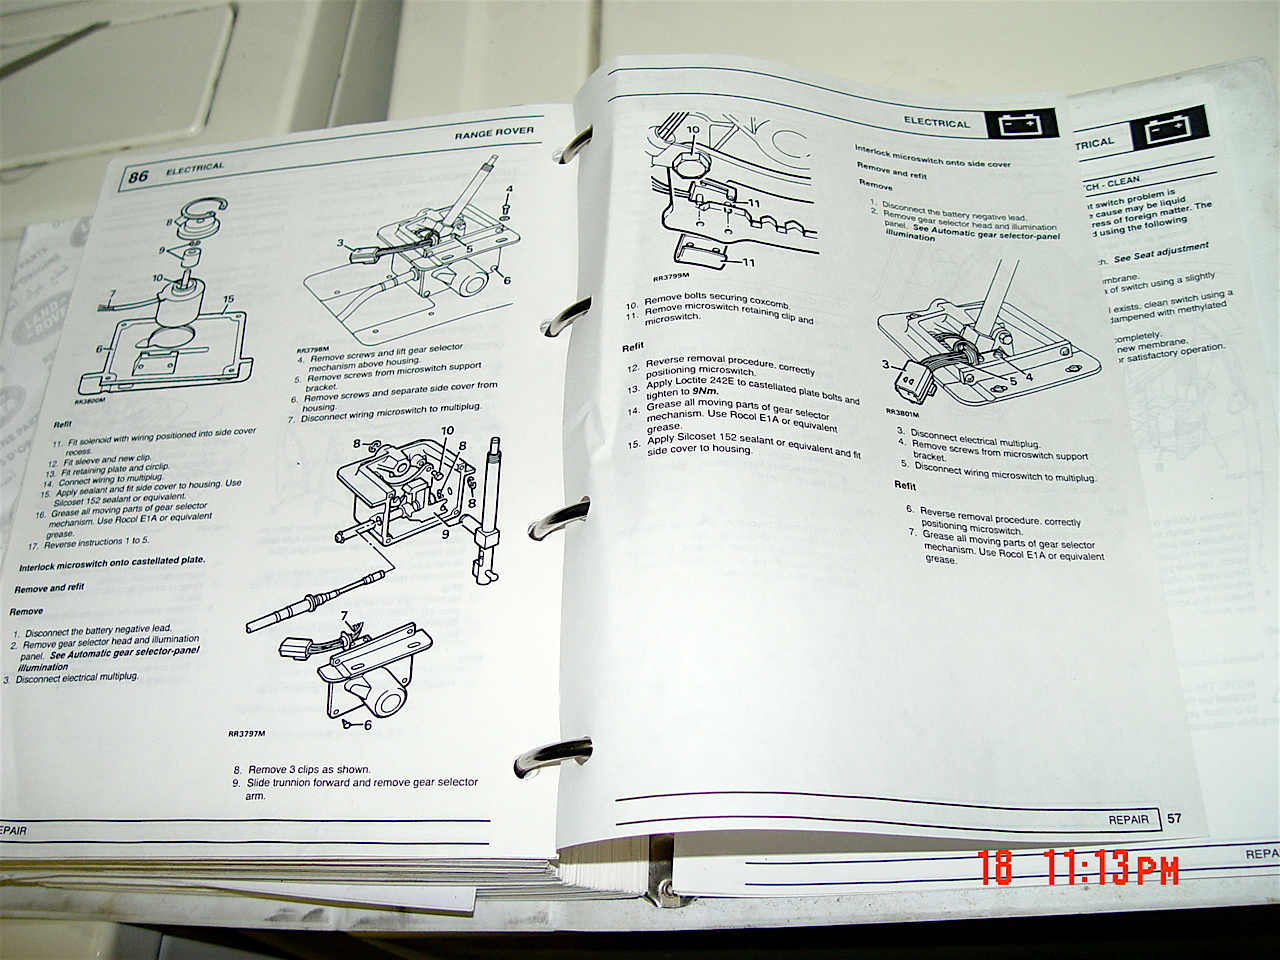 DSC07887 reverse gear interlock valve siezed land rover forums land smart start interlock wiring diagram at gsmx.co